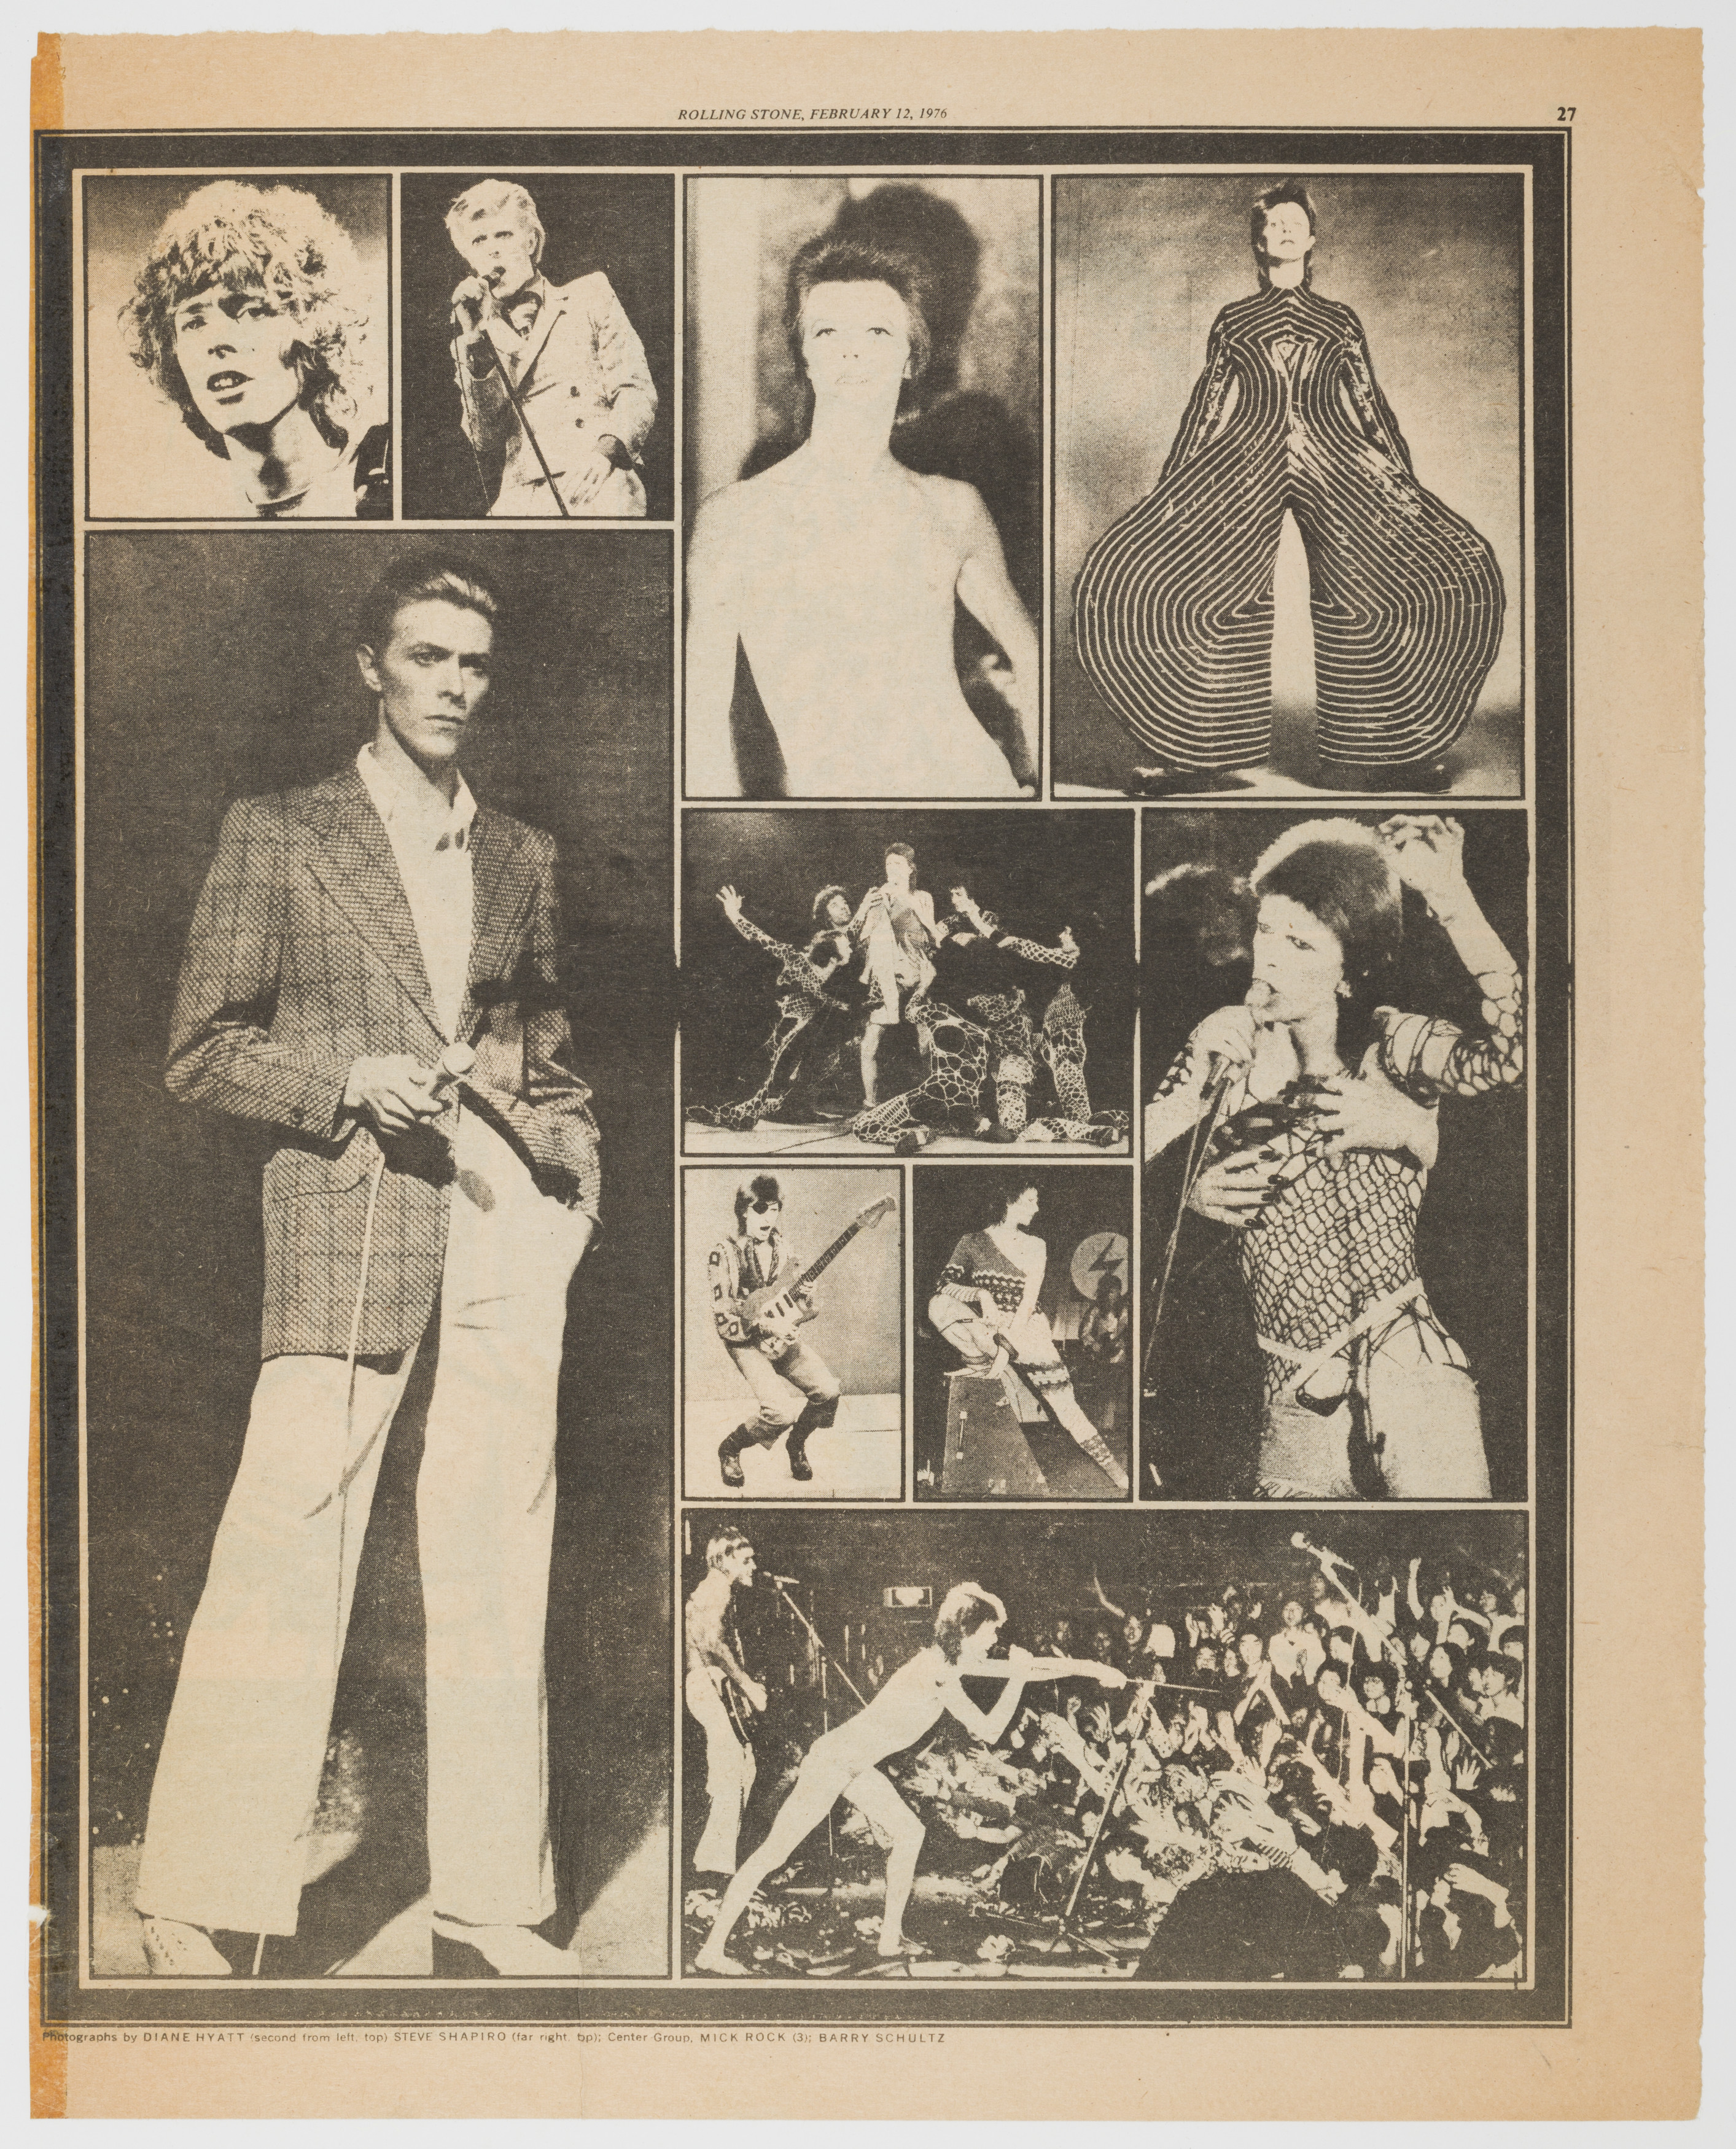 David Bowie, Rolling Stone, 12 February 1976